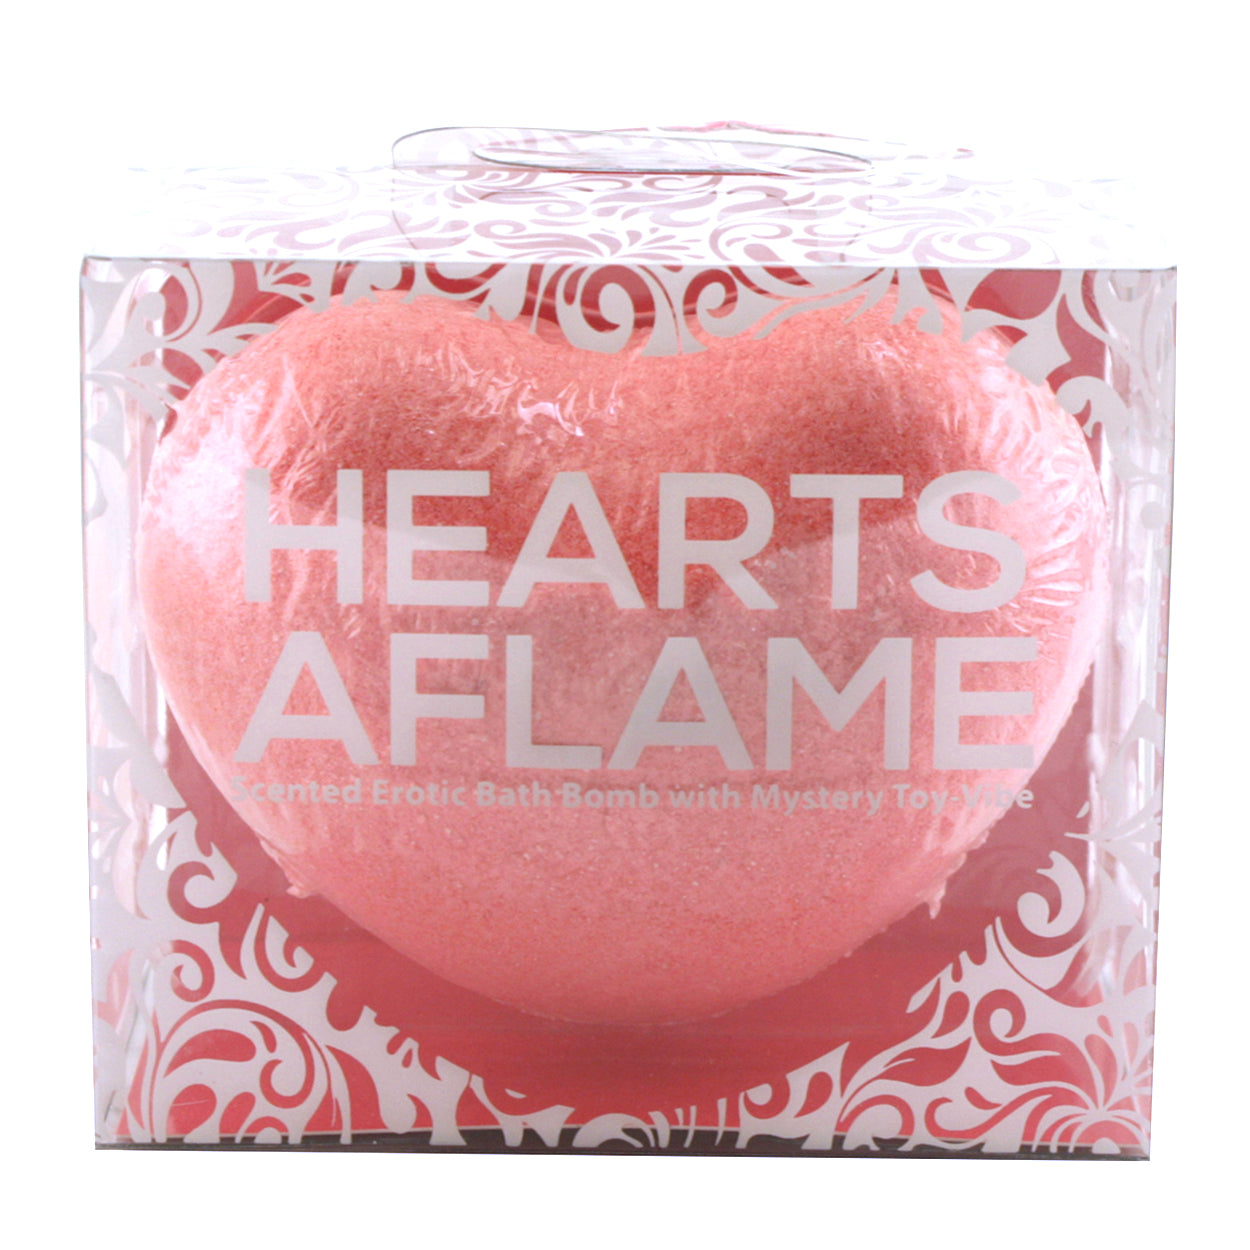 Erotic Heart Scented Bath Bomb